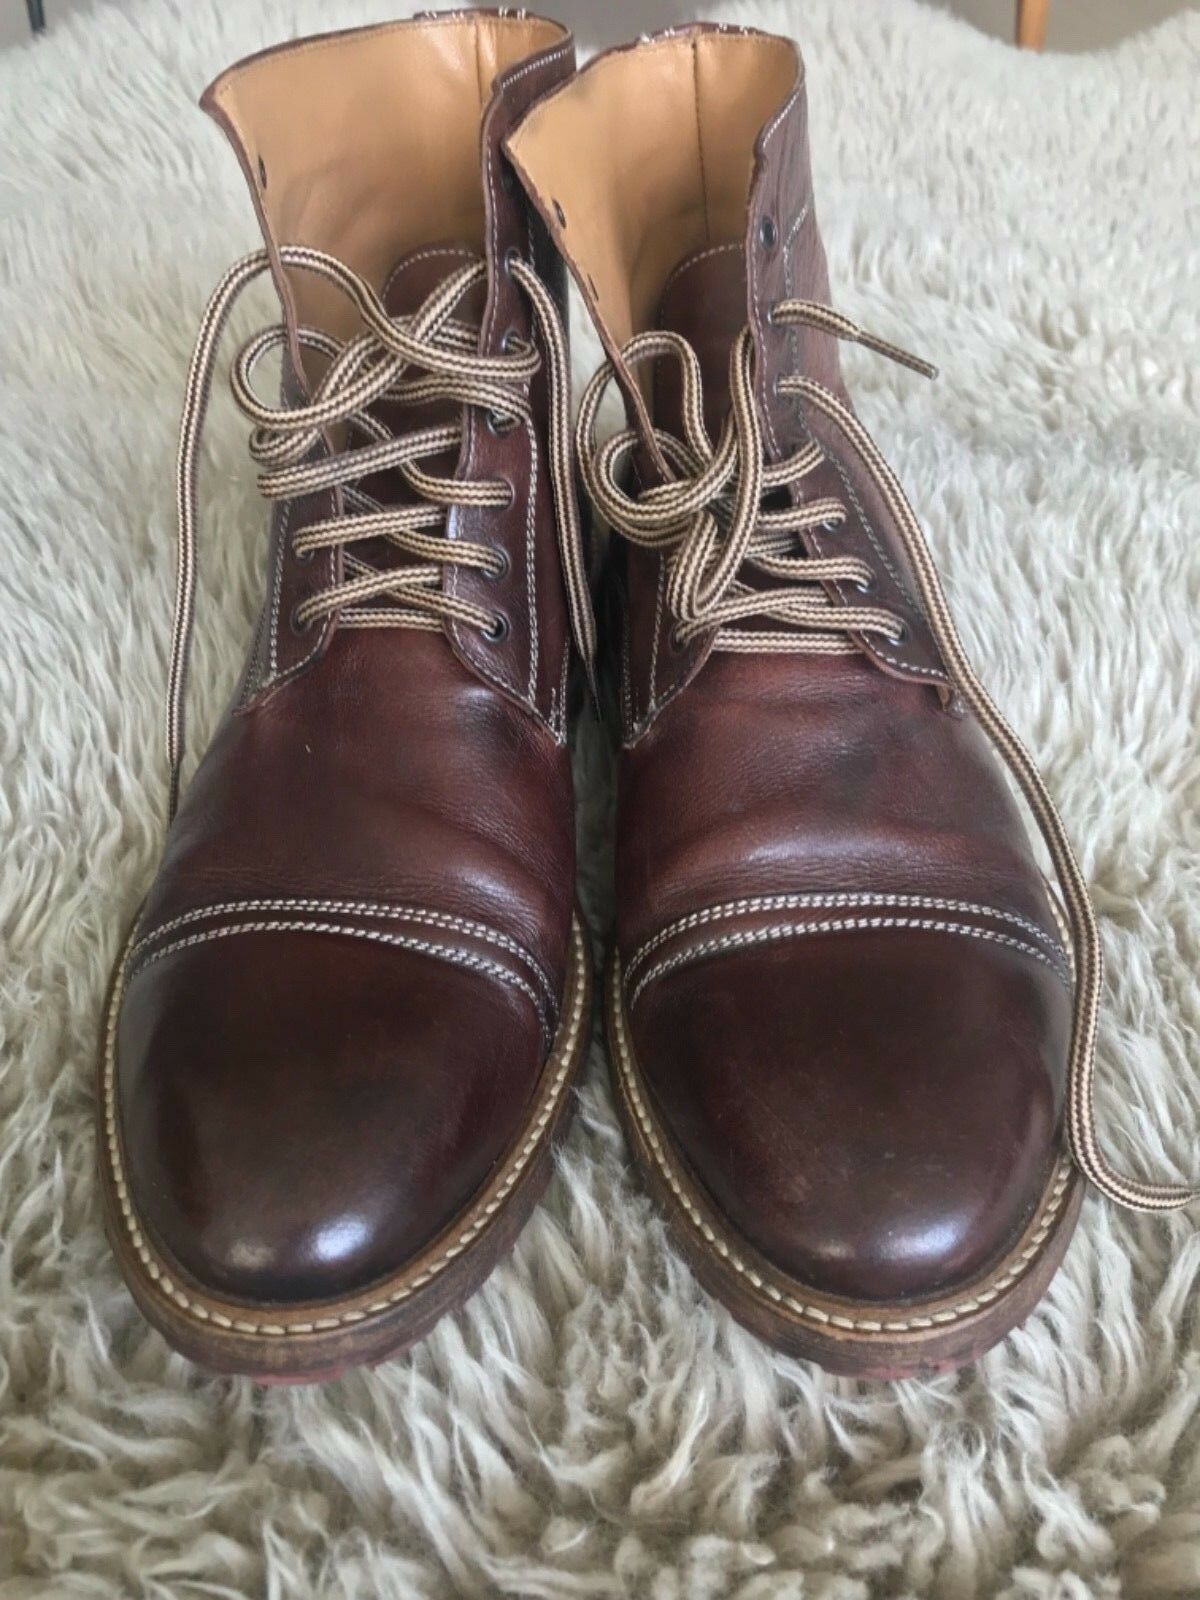 Barney's New York  Brown Leather Boots Men Size 9 US